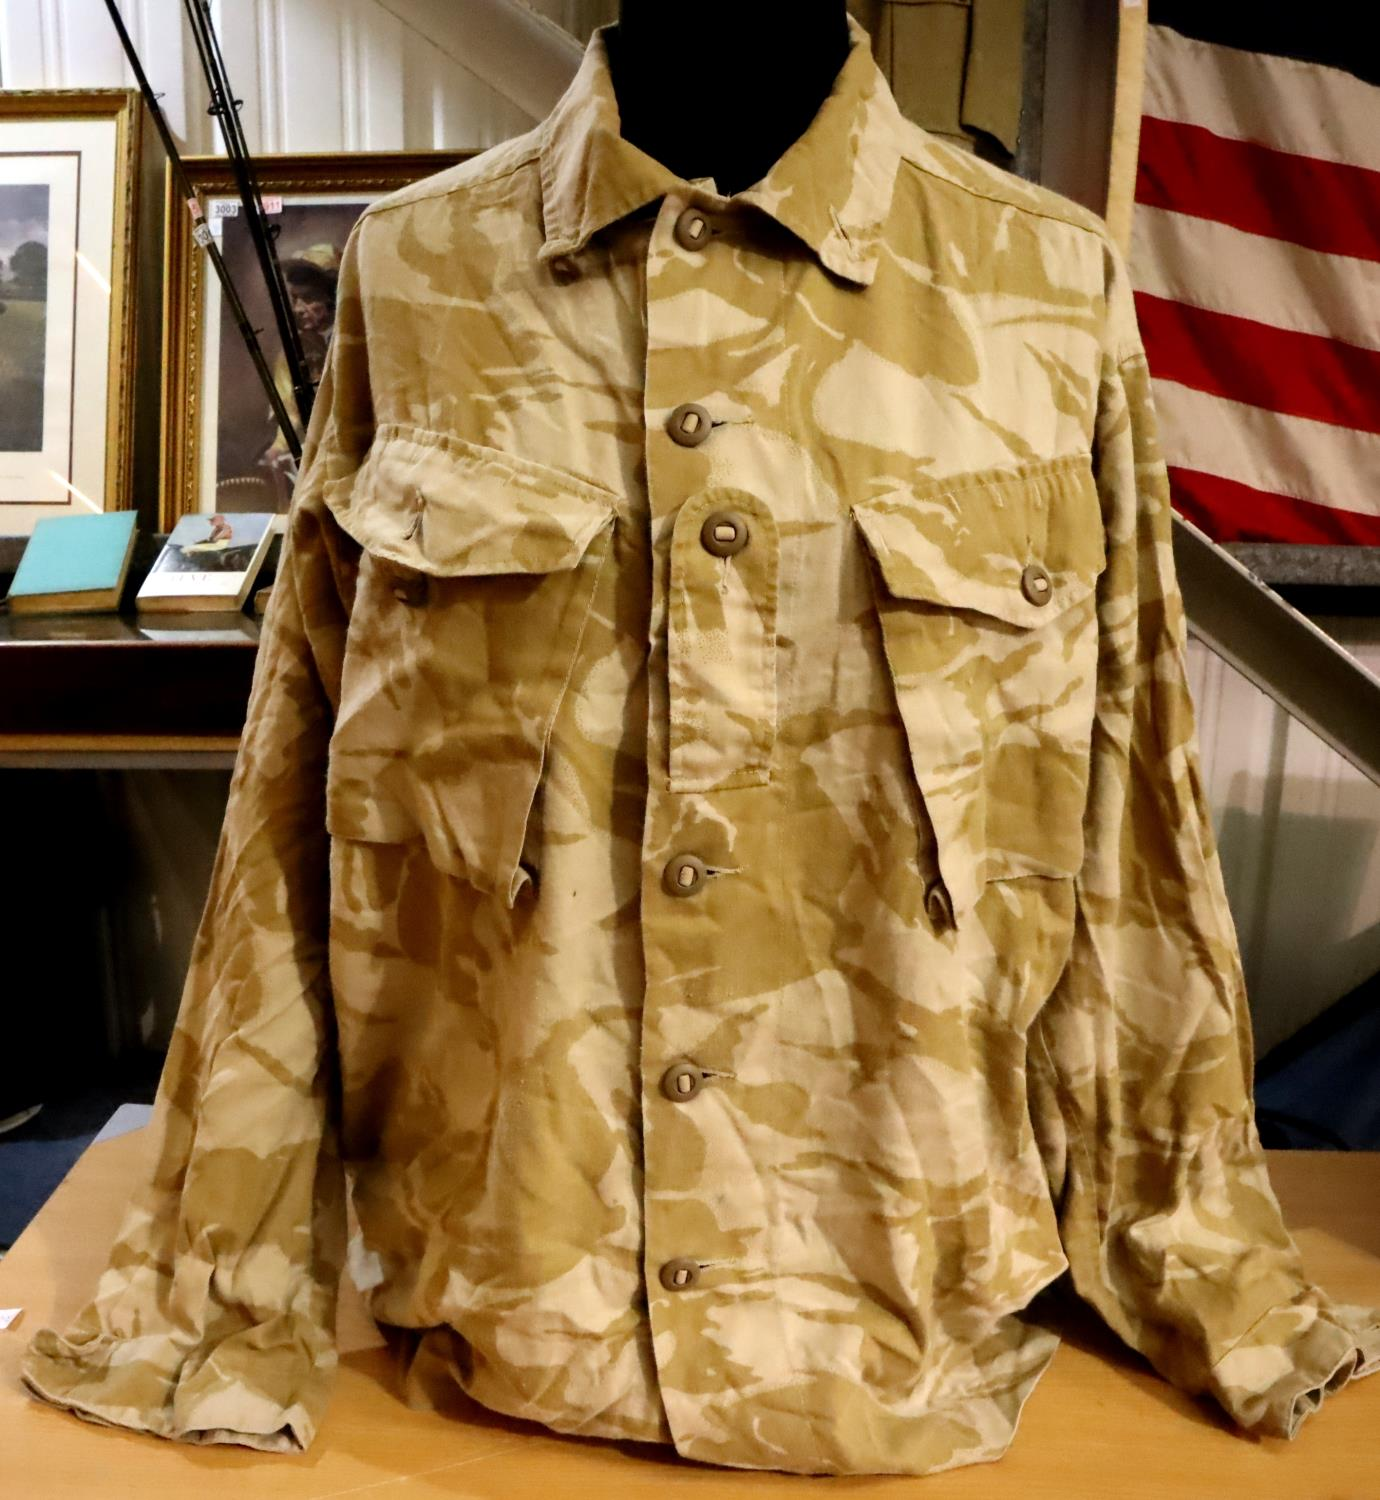 Fifty desert camouflage British Grade 1 shirts. P&P Group 3 (£25+VAT for the first lot and £5+VAT